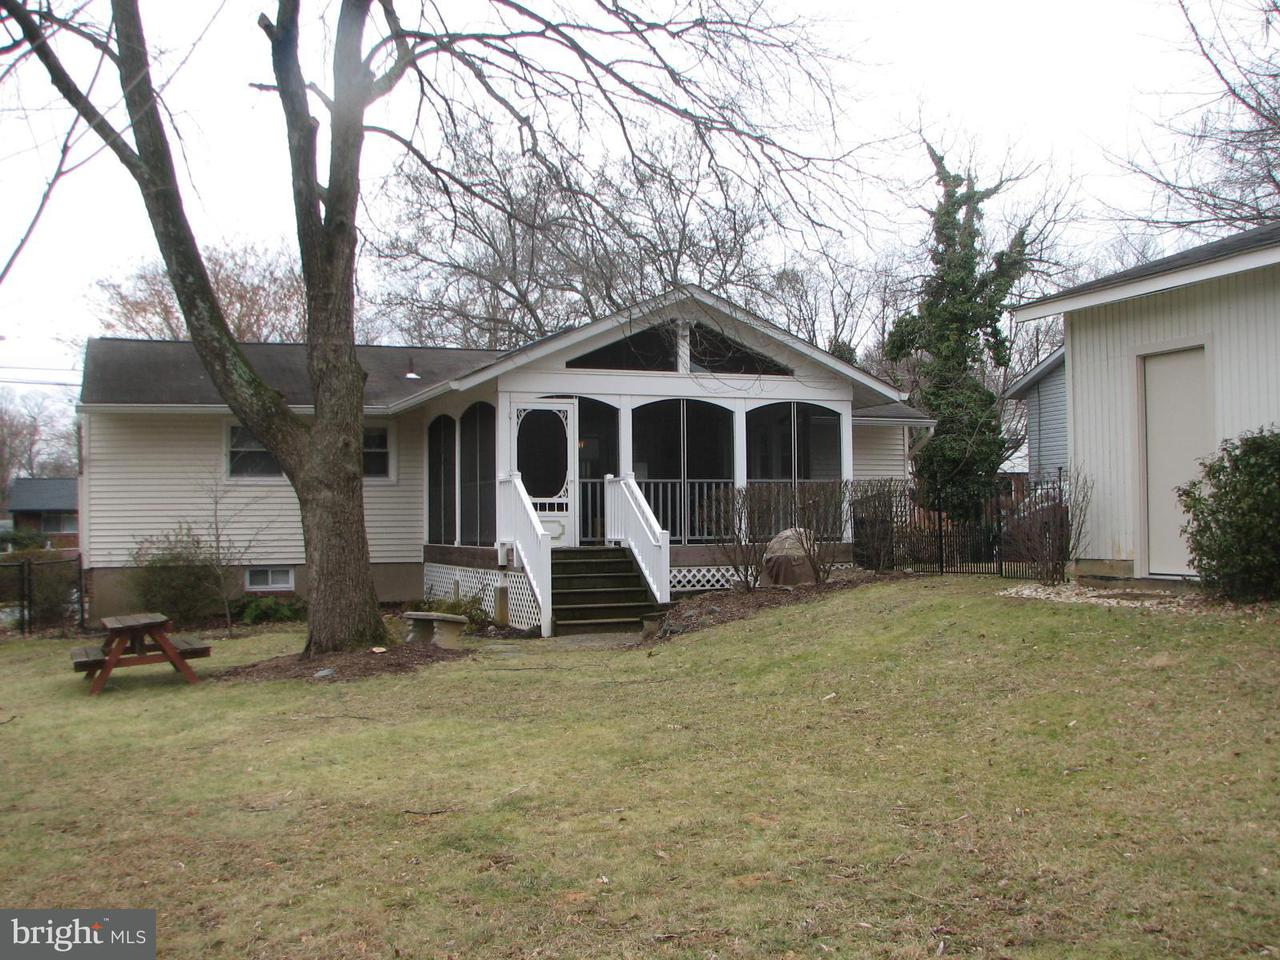 Additional photo for property listing at 706 Ware St Sw 706 Ware St Sw Vienna, 弗吉尼亞州 22180 美國